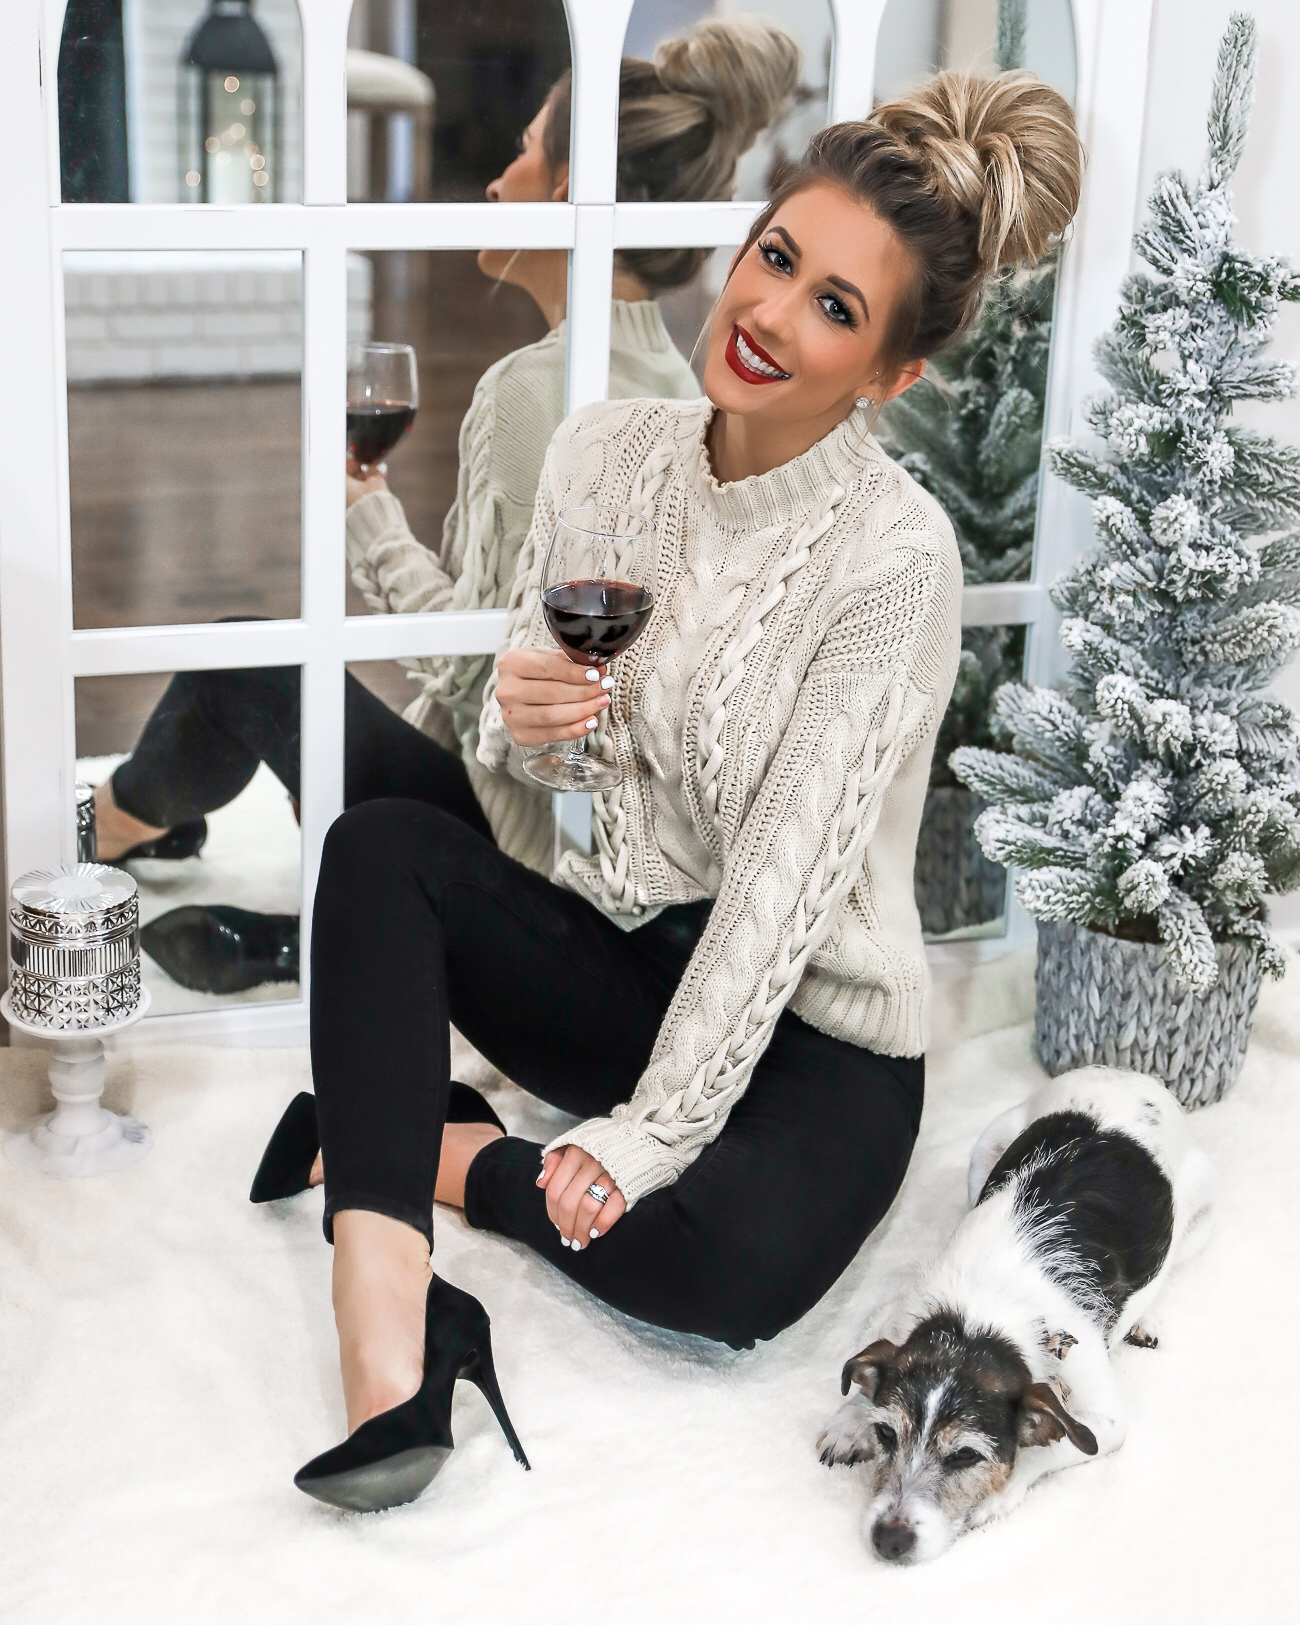 Walmart Chunky Cable Knit Sweater Casual Chic Holiday Outfit Steve Madden Daisie Black Suede Pumps Laura Beverlin -111